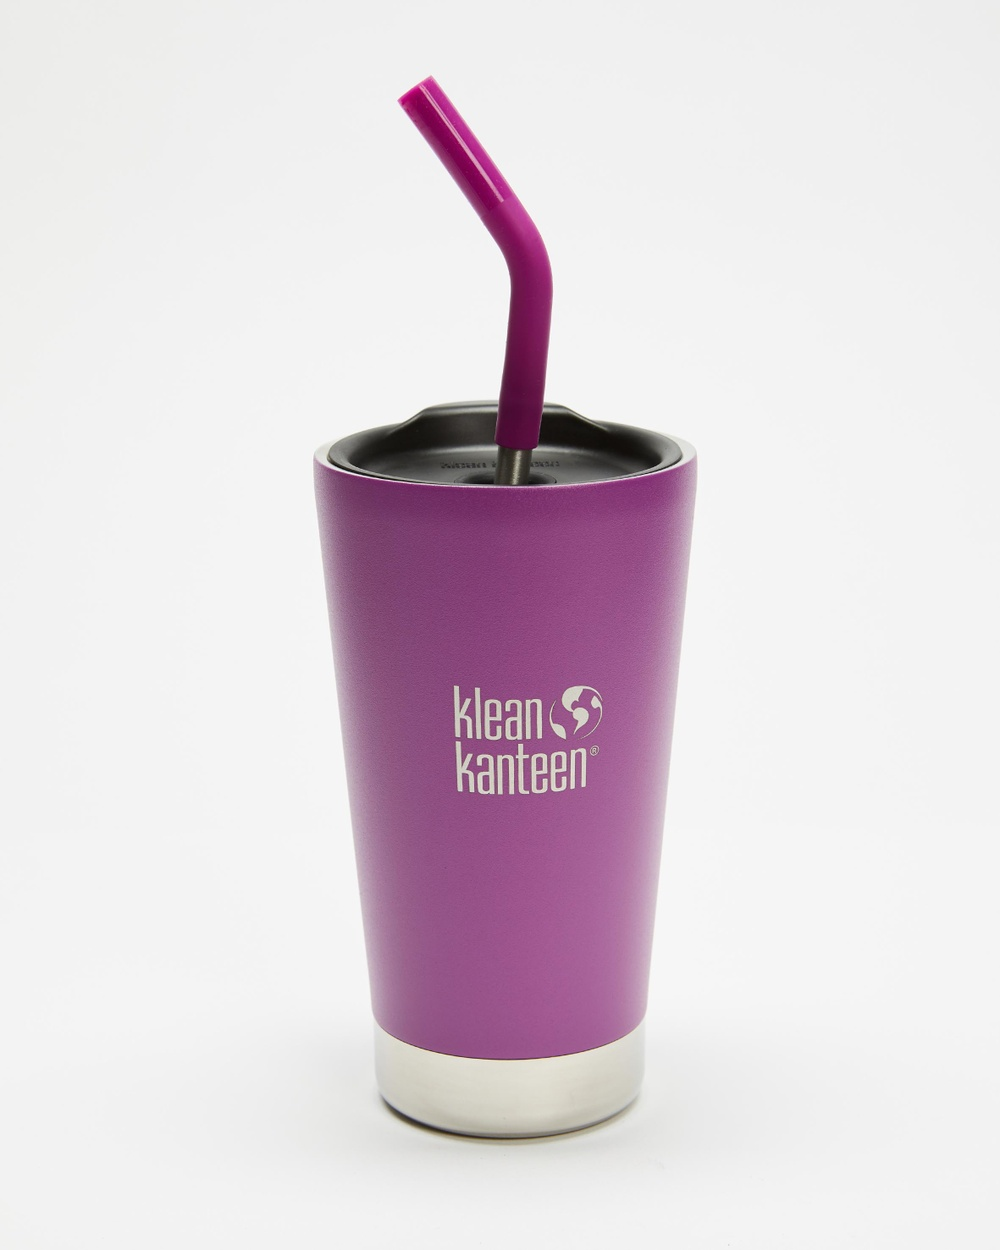 Klean Kanteen 16oz Insulated Tumbler with Straw Lid Water Bottles Berry Bright